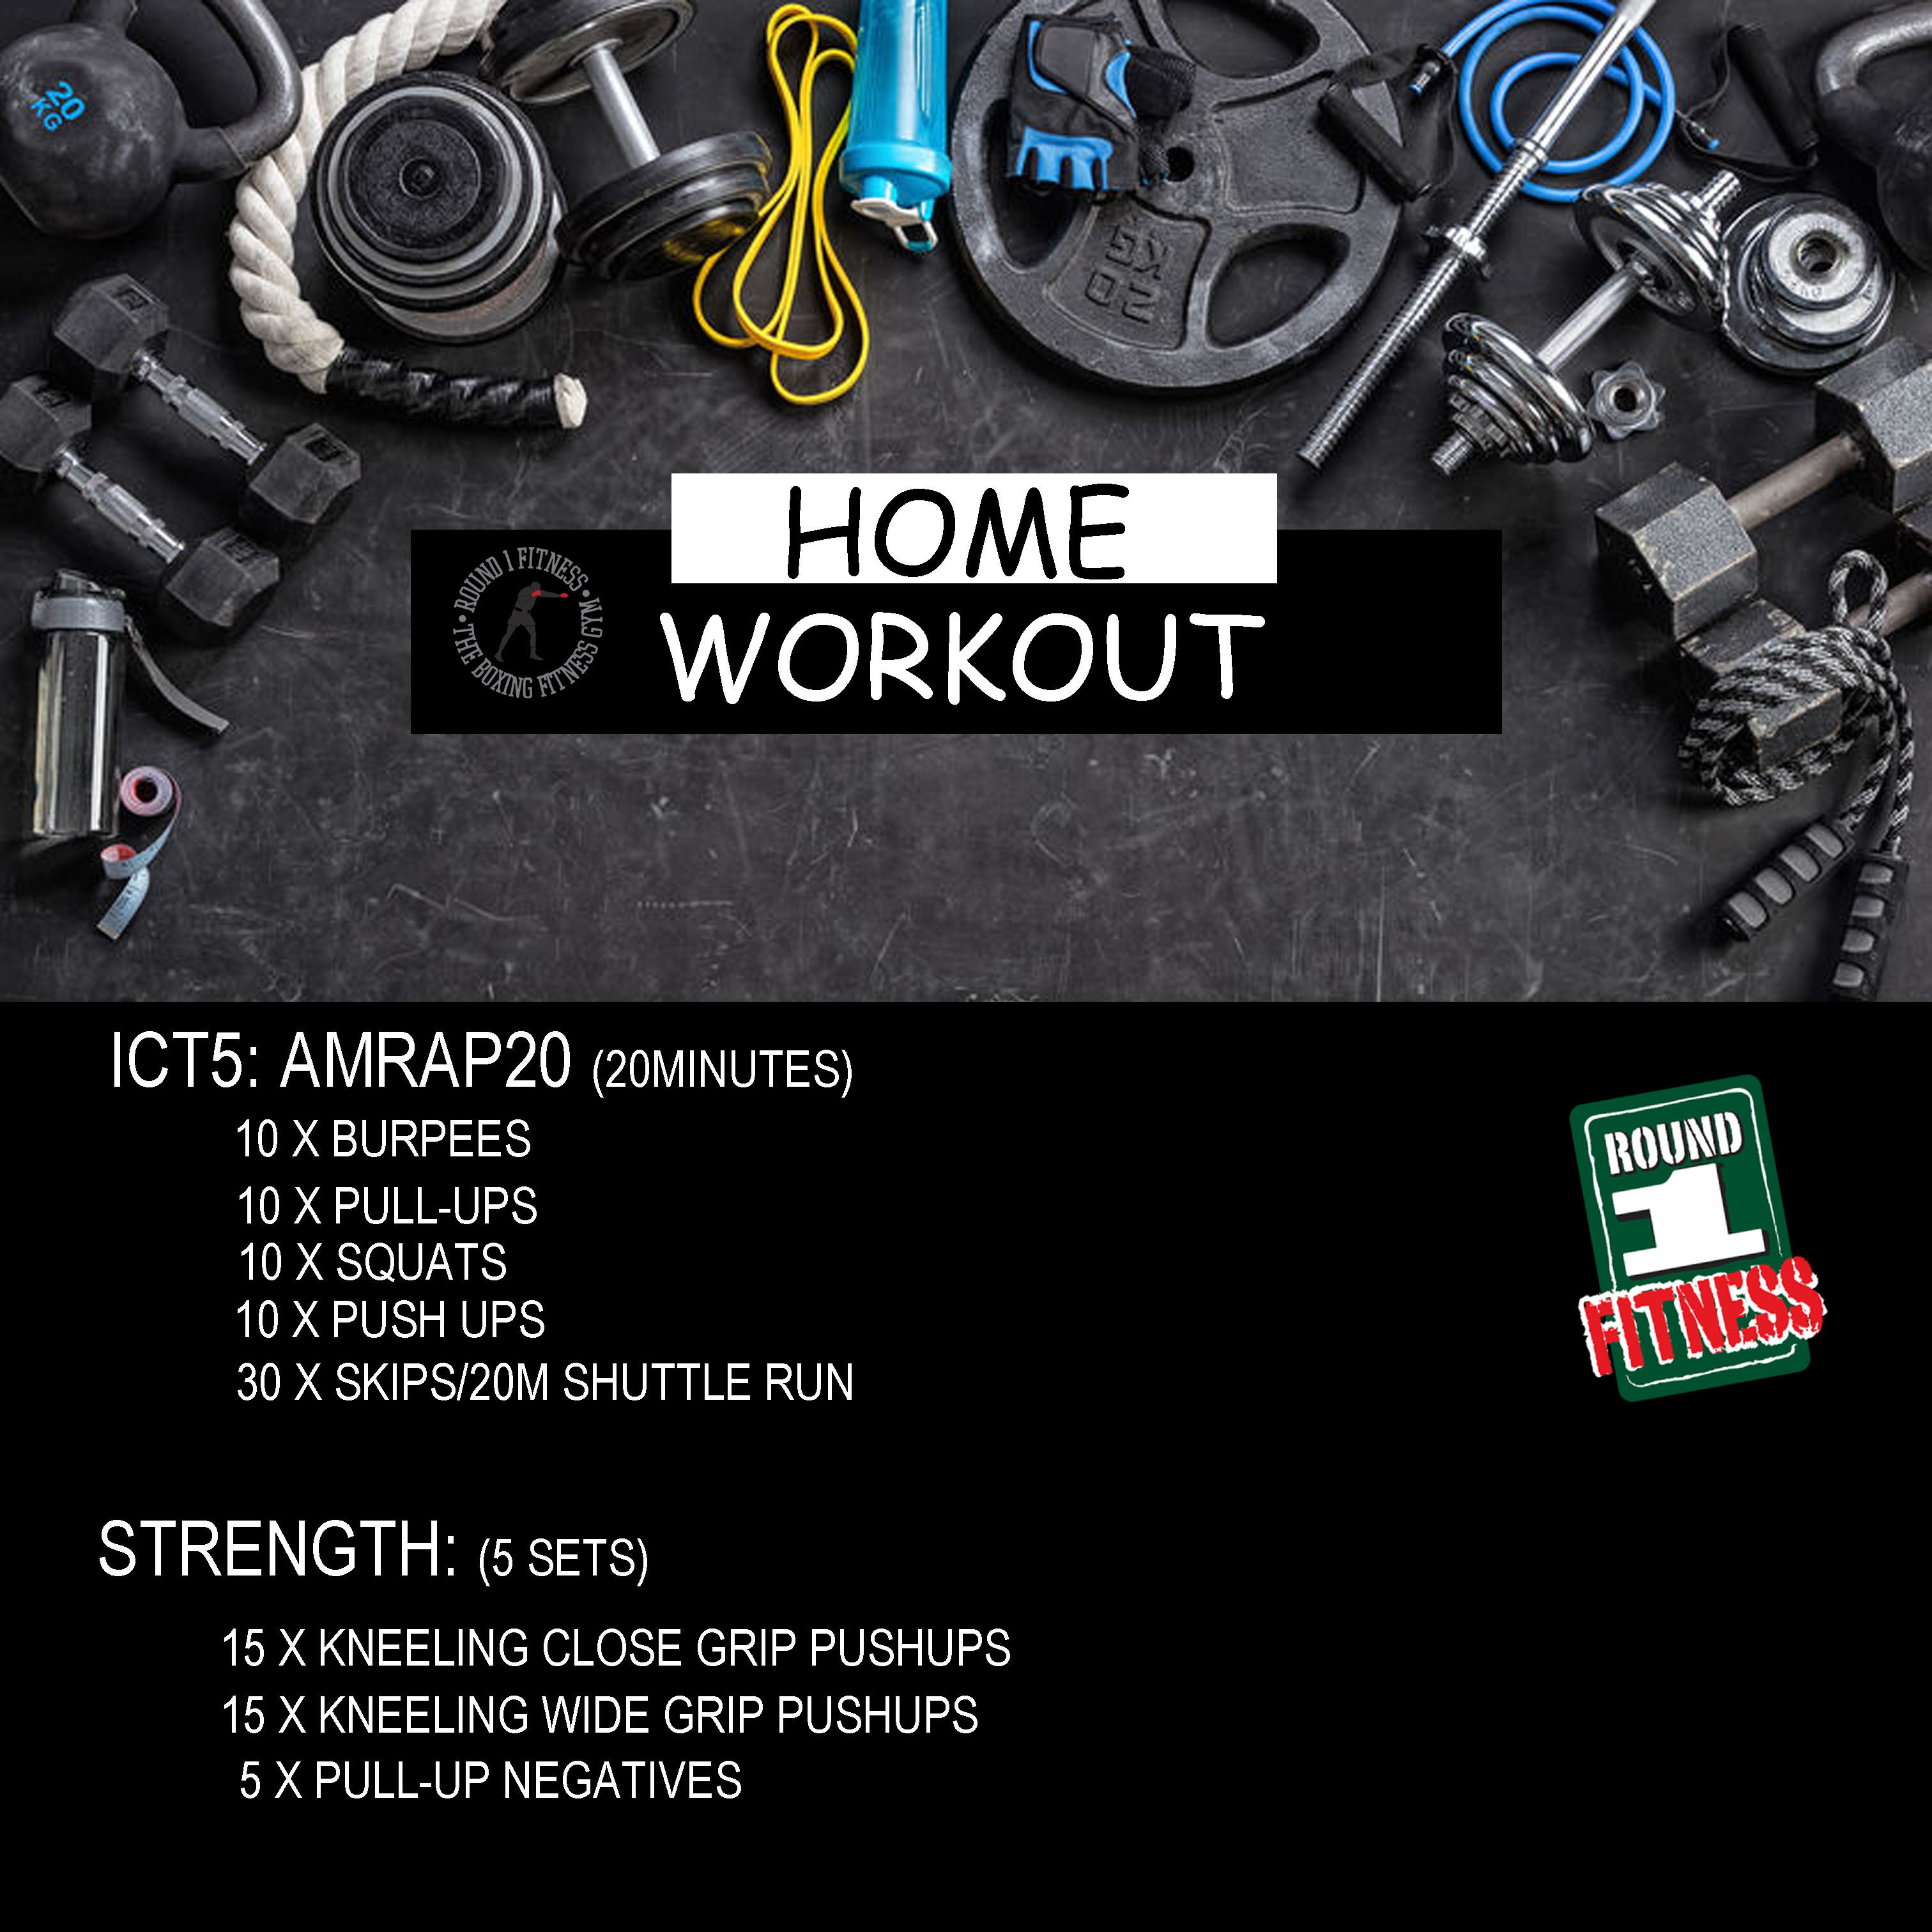 COVID Lockdown#3 – Round 1 @ Home – Workout 2, April 25th 2021